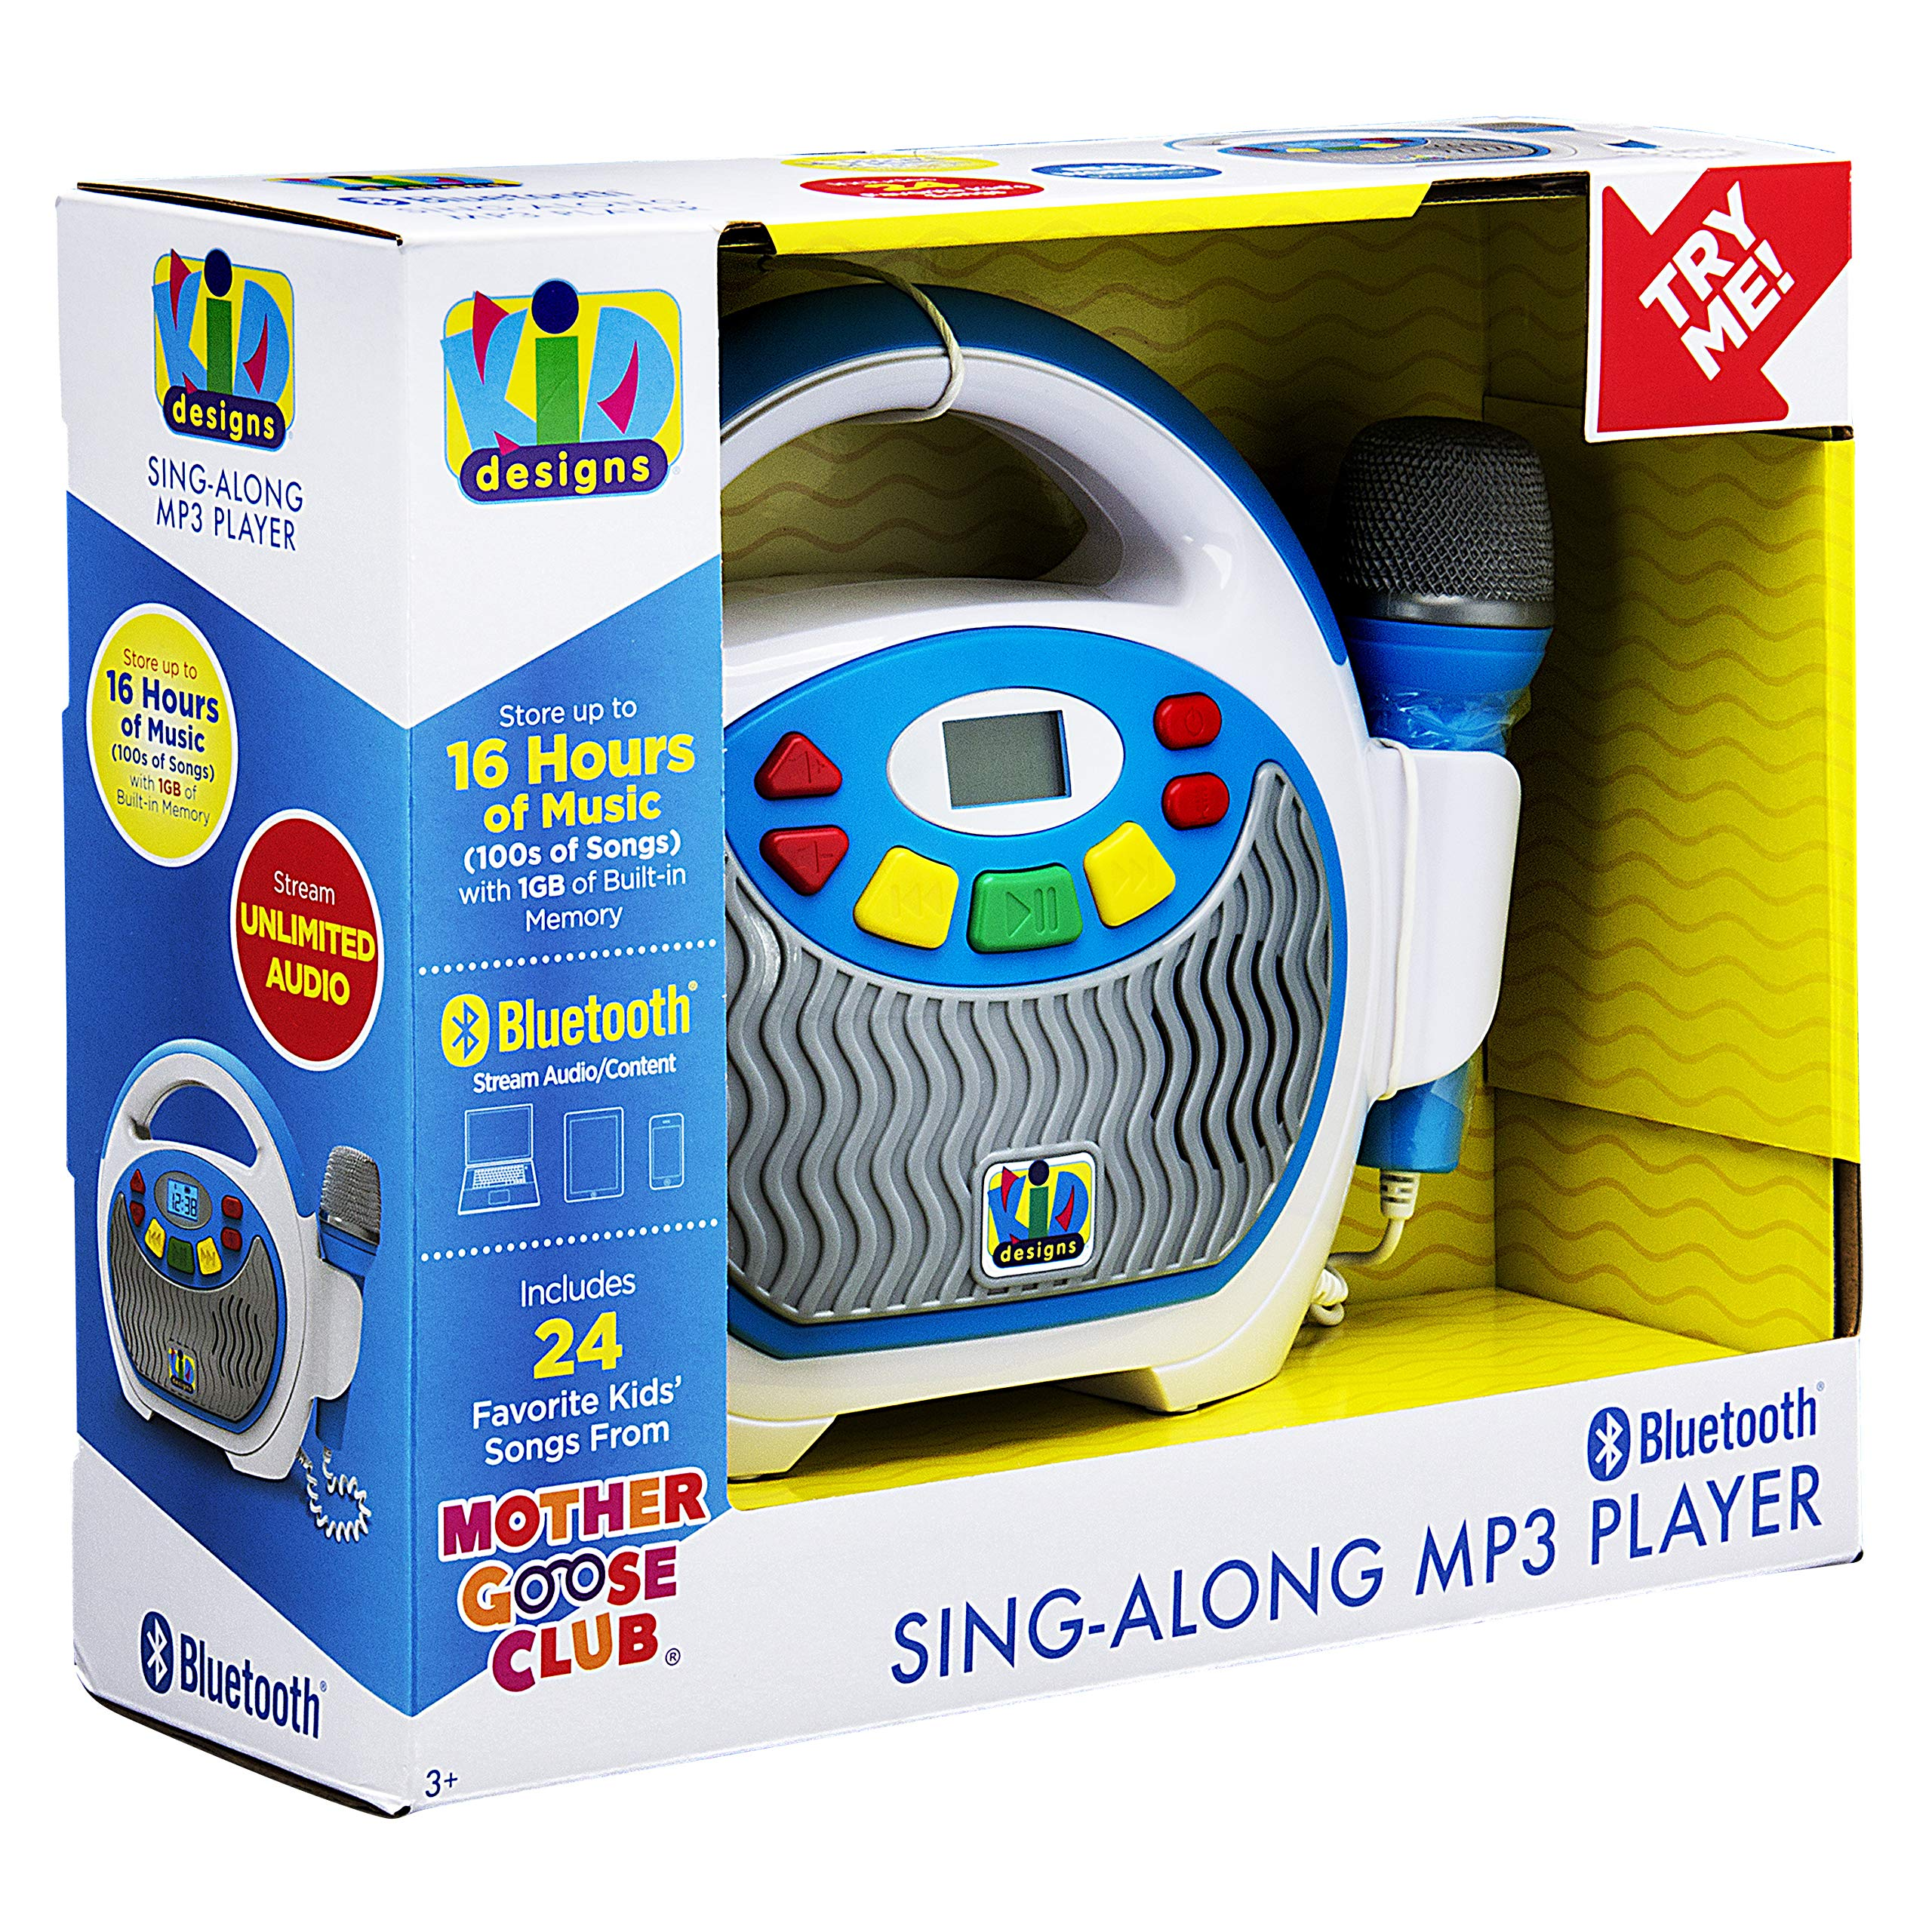 eKids Bluetooth Sing Along Portable MP3 Player Real Working Microphone Stores up to 16 Hours Music 1 GB Built in Memory USB Port to Expand Your Content Built in Rechargeable Batteries KIDdesigns